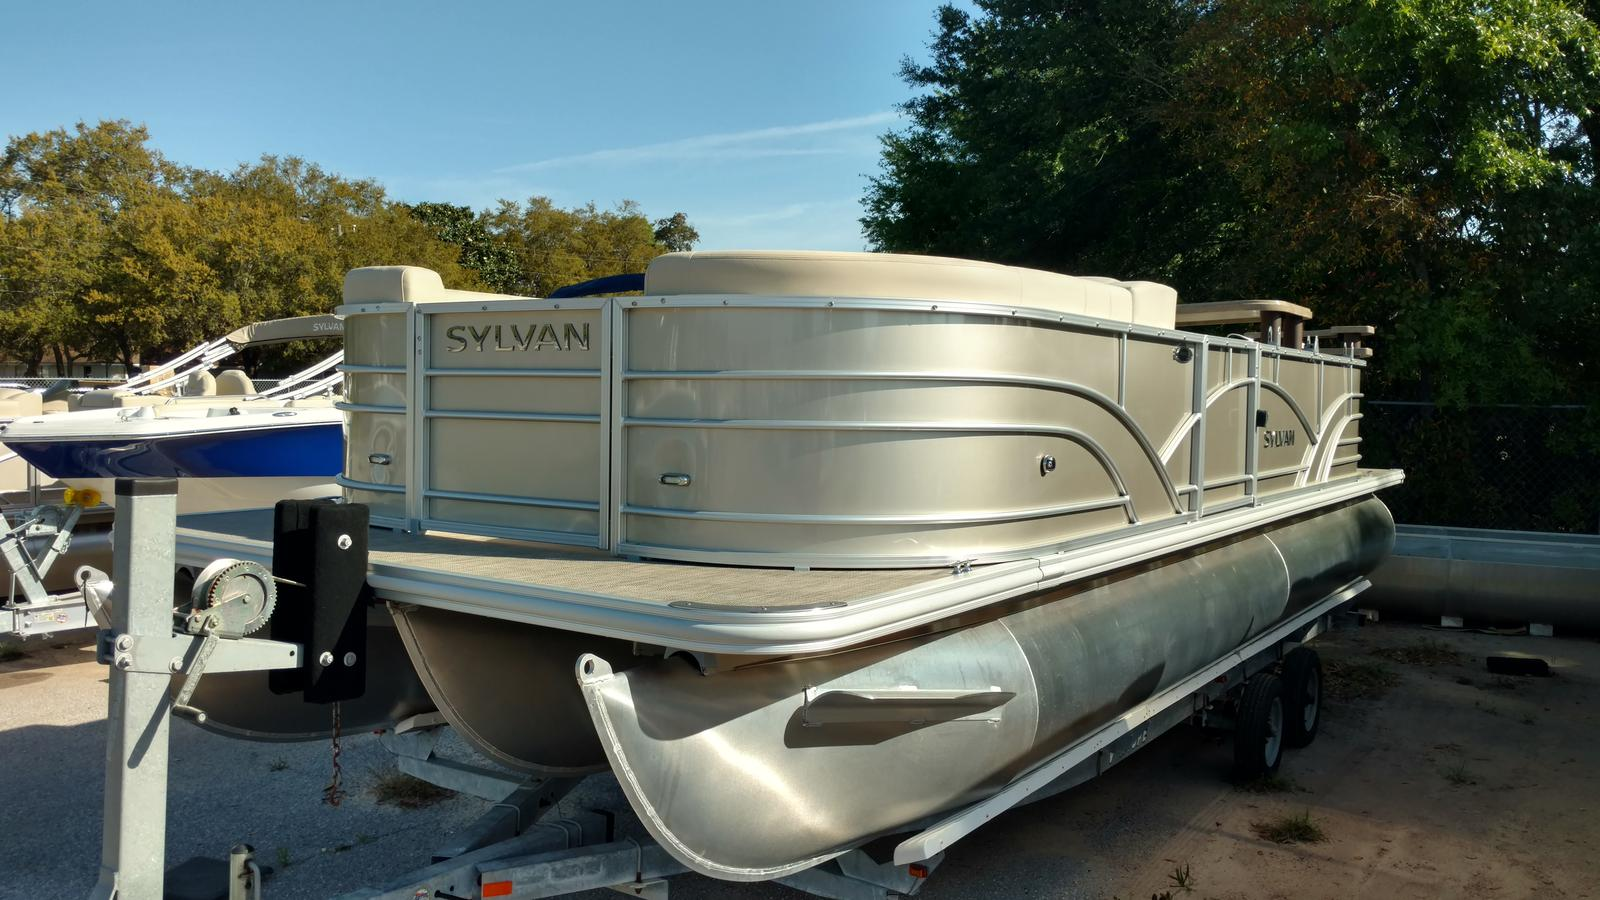 Sylvan mirage cruise 8522 lz pb boats for sale for Syvlan